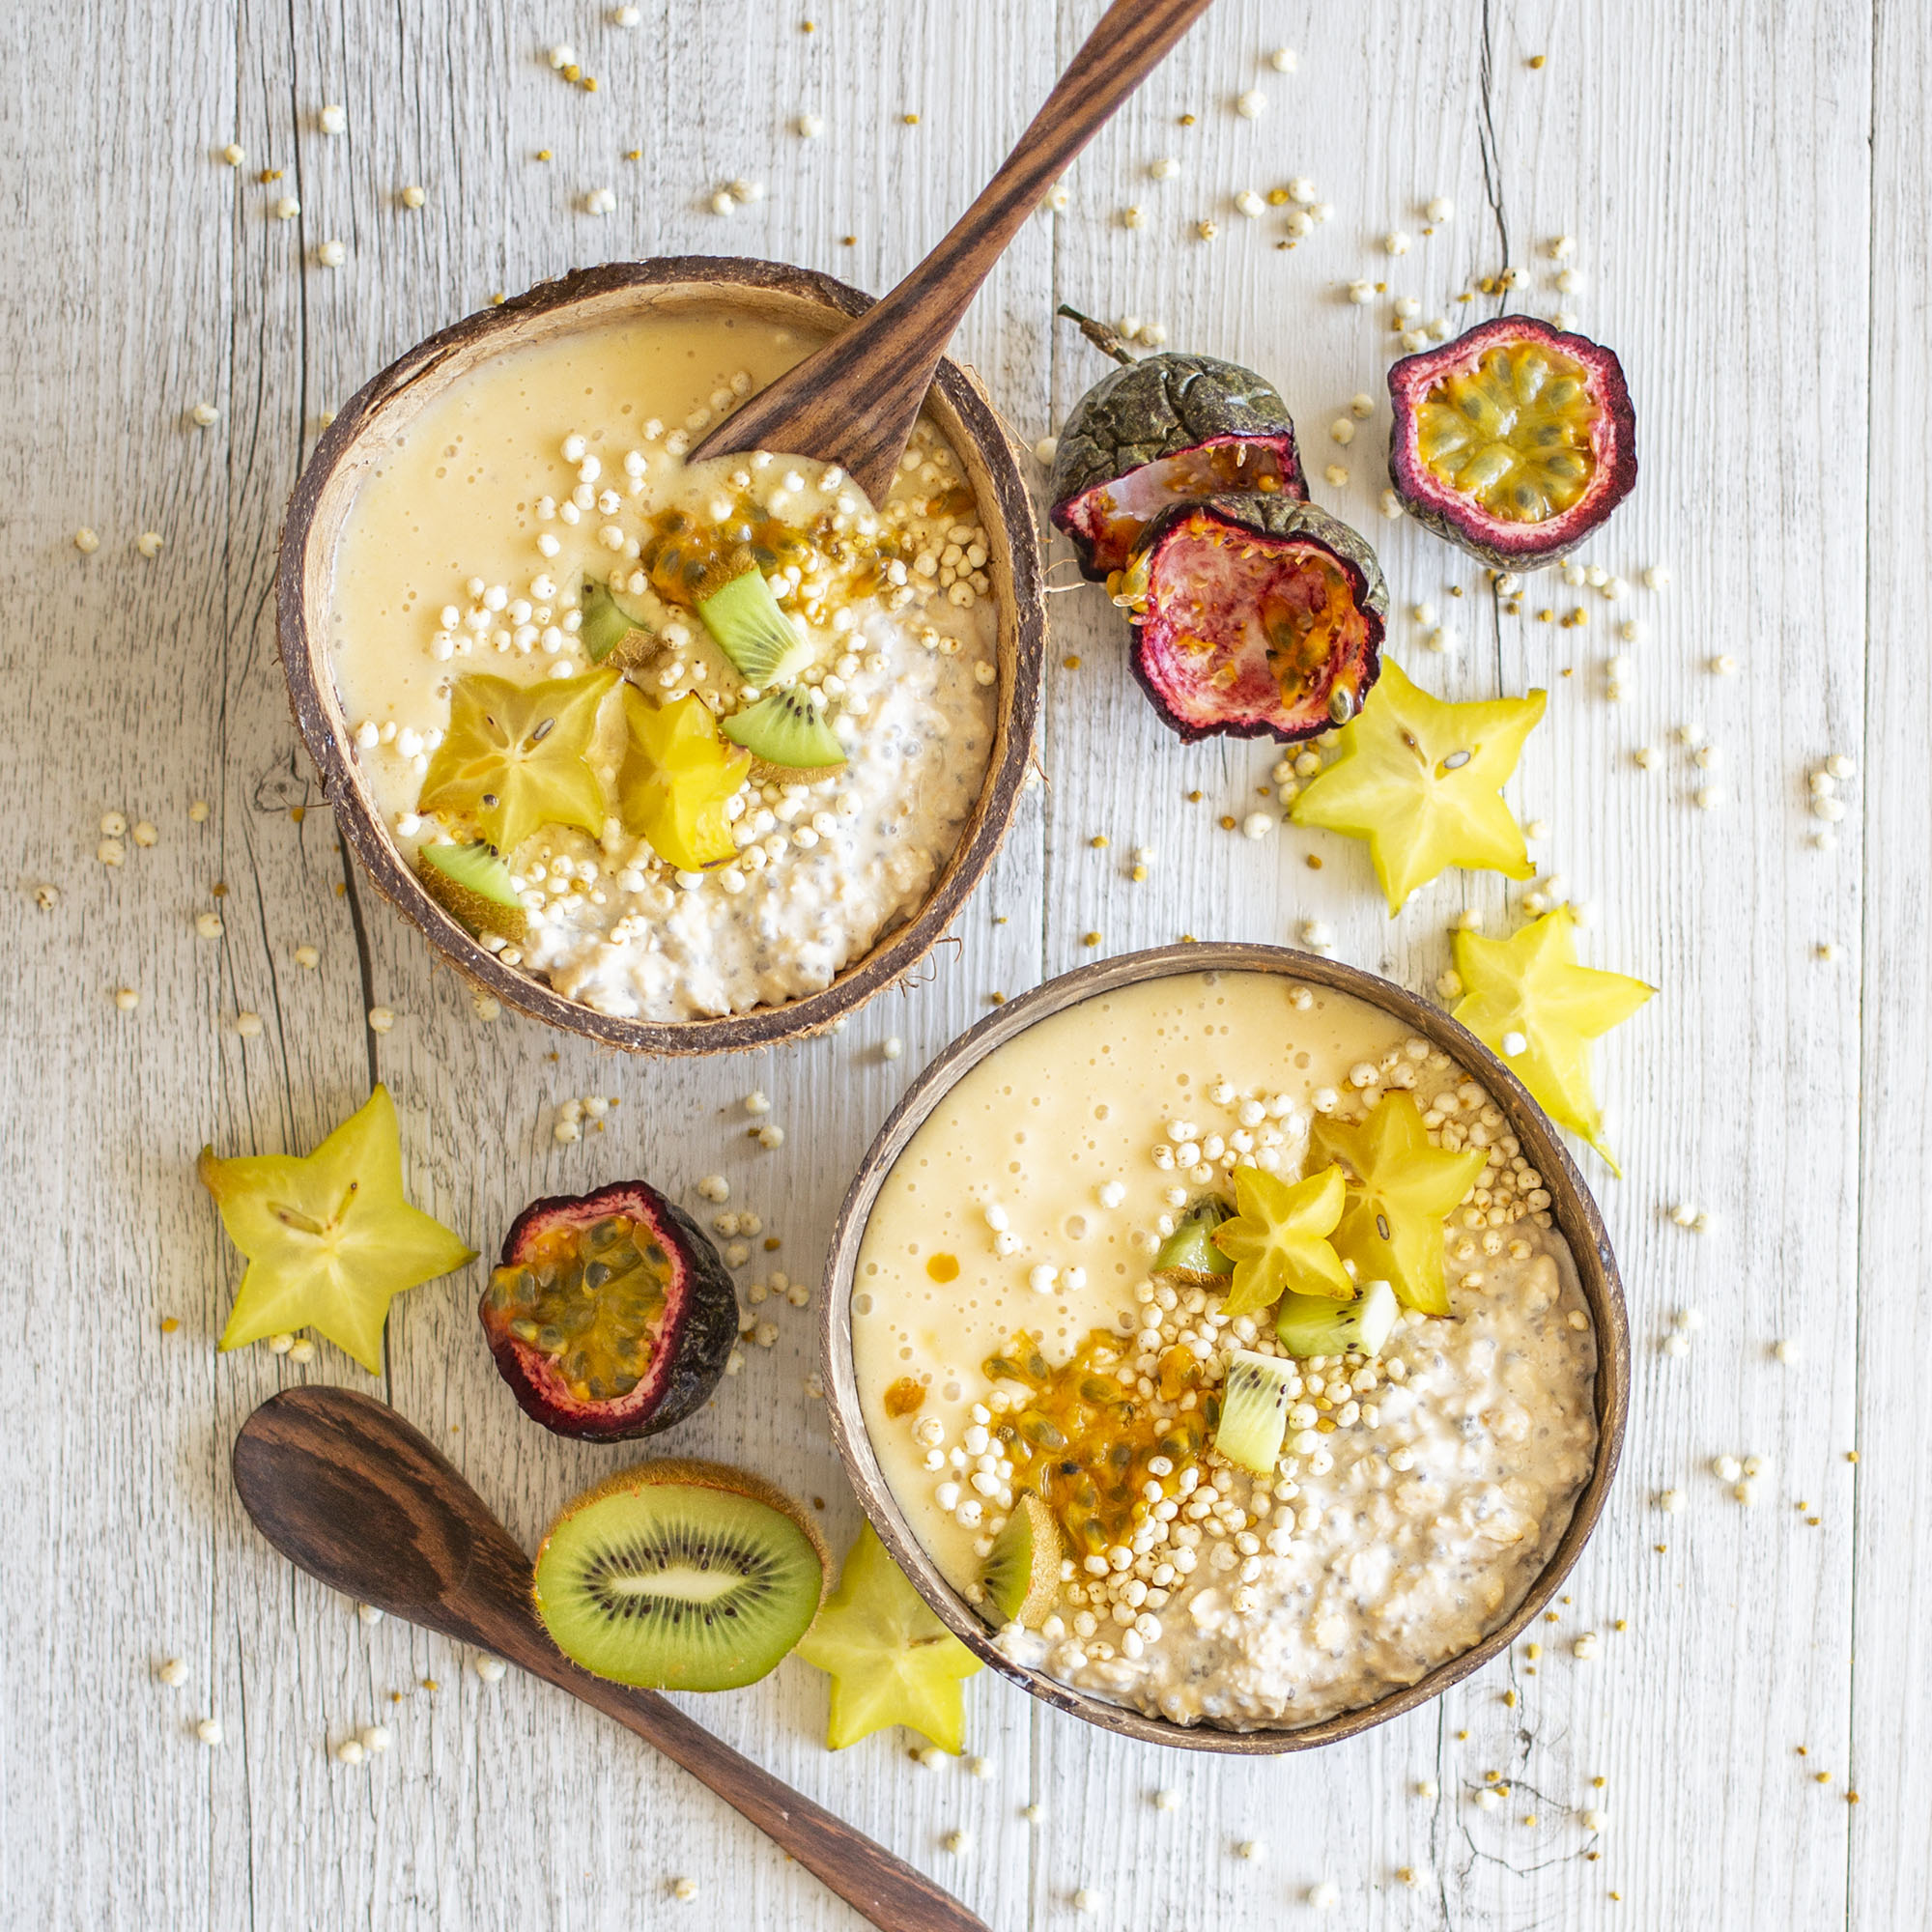 Tropical Vegan half and half Smoothie Oatmeal Bowl